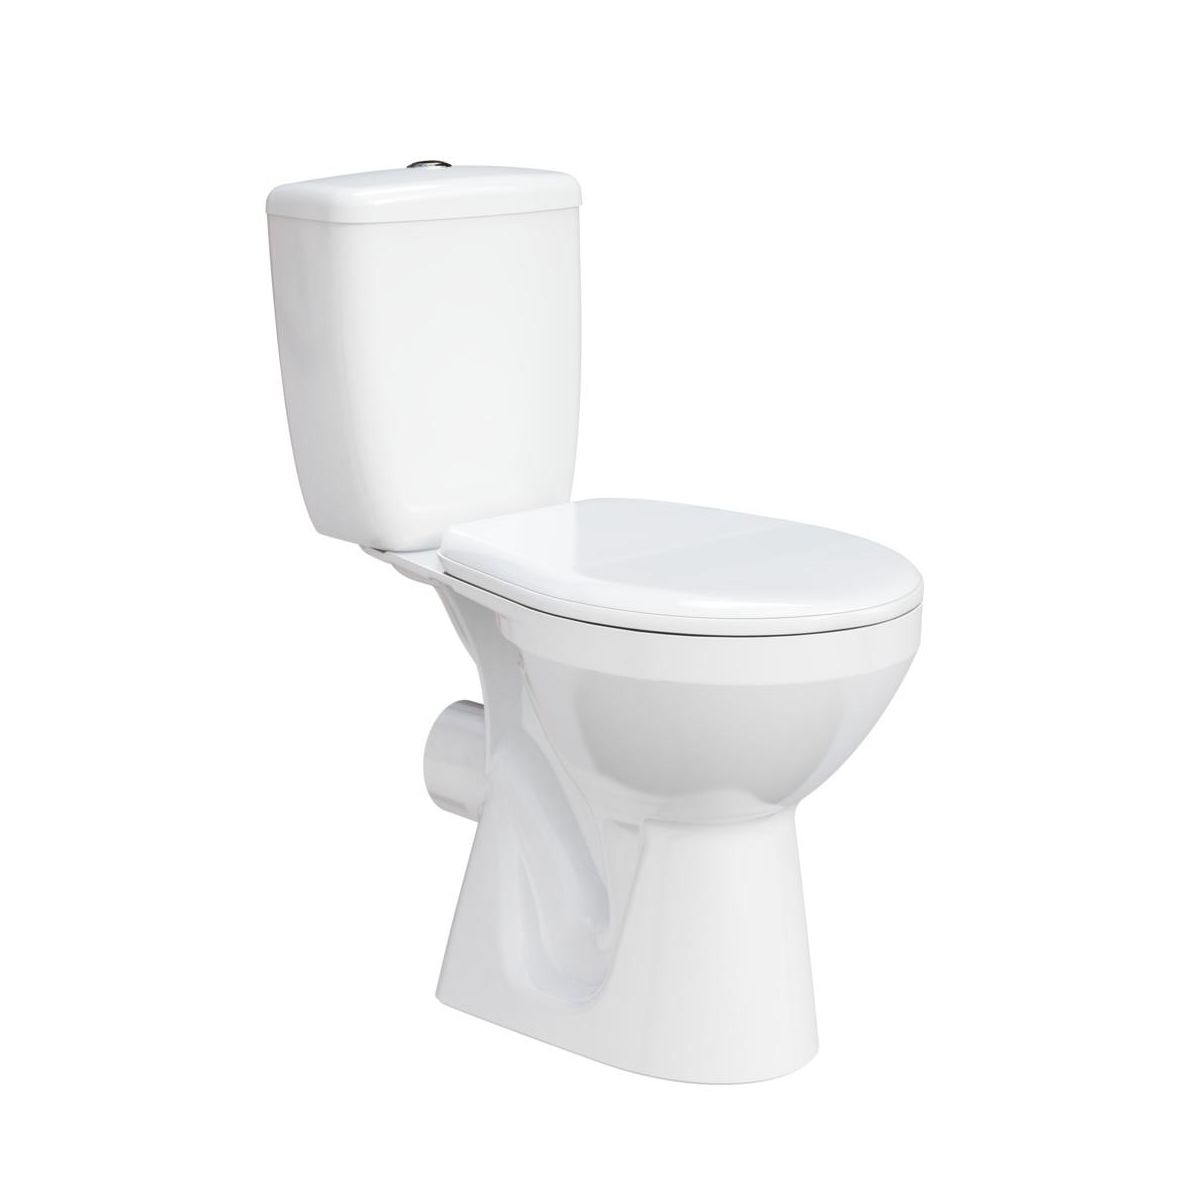 WC kompakt ESSENTIAL SENSEA